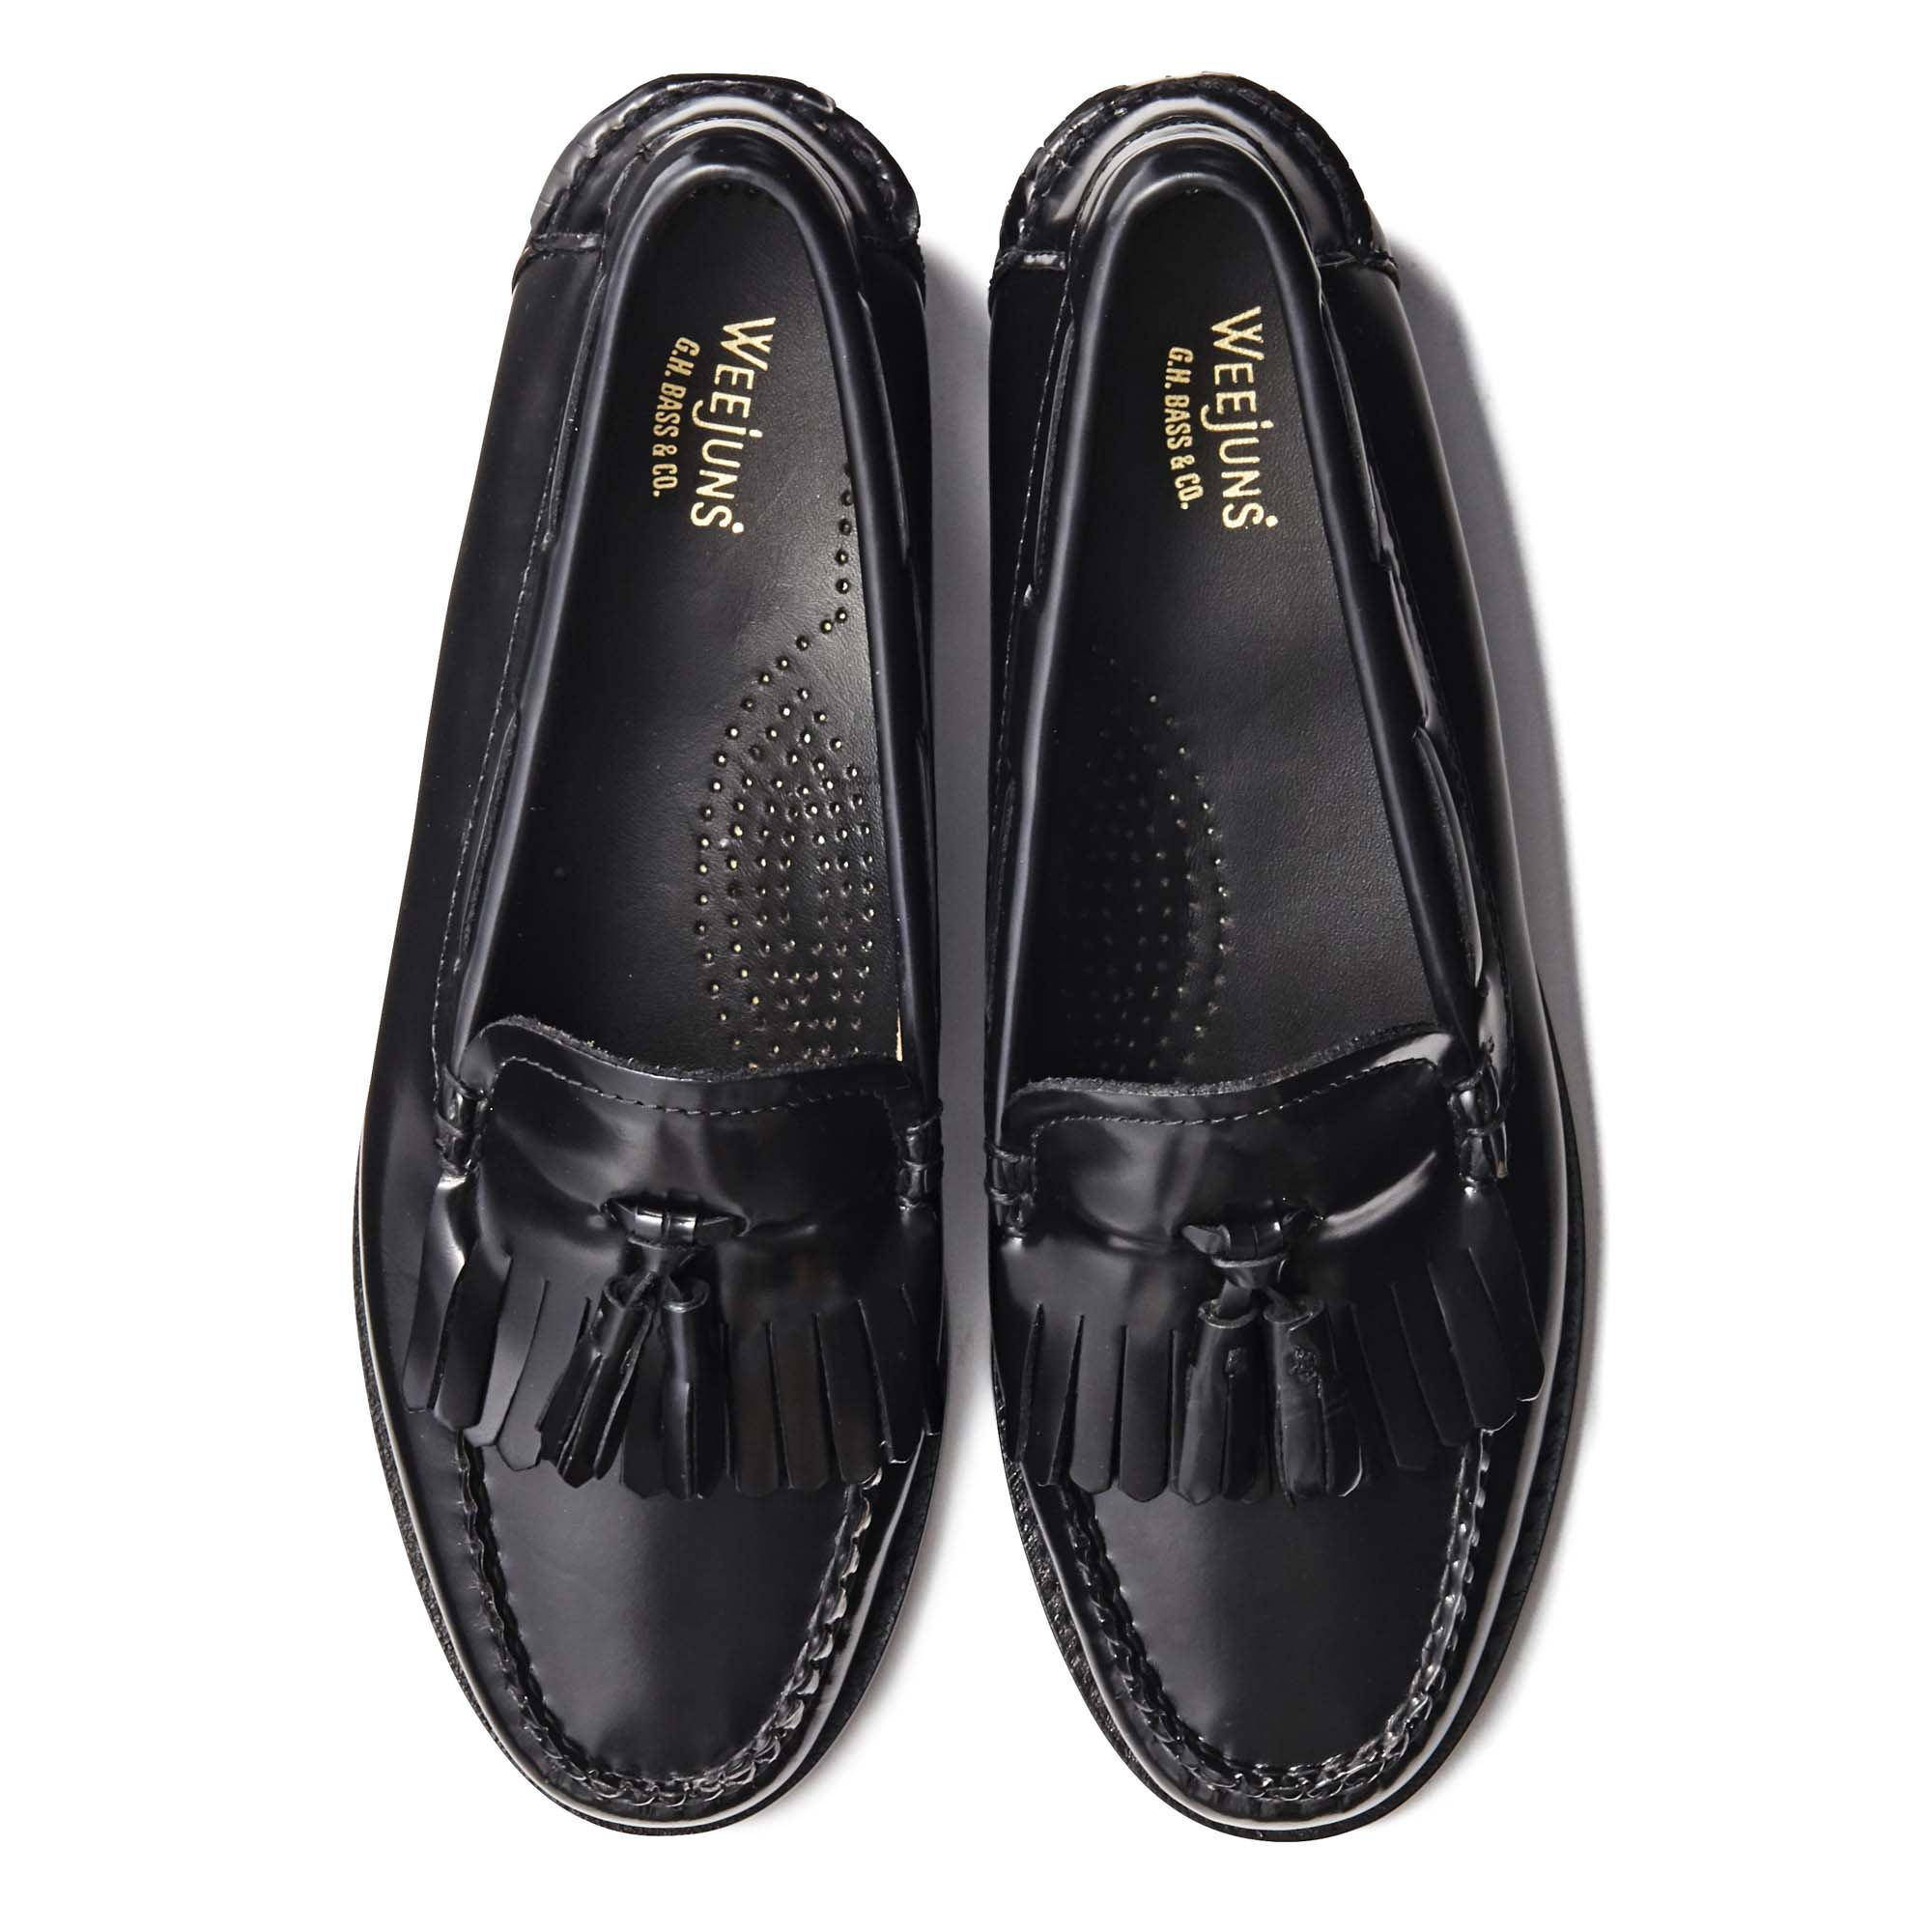 41020 / BLACK (LEATHER SOLE)